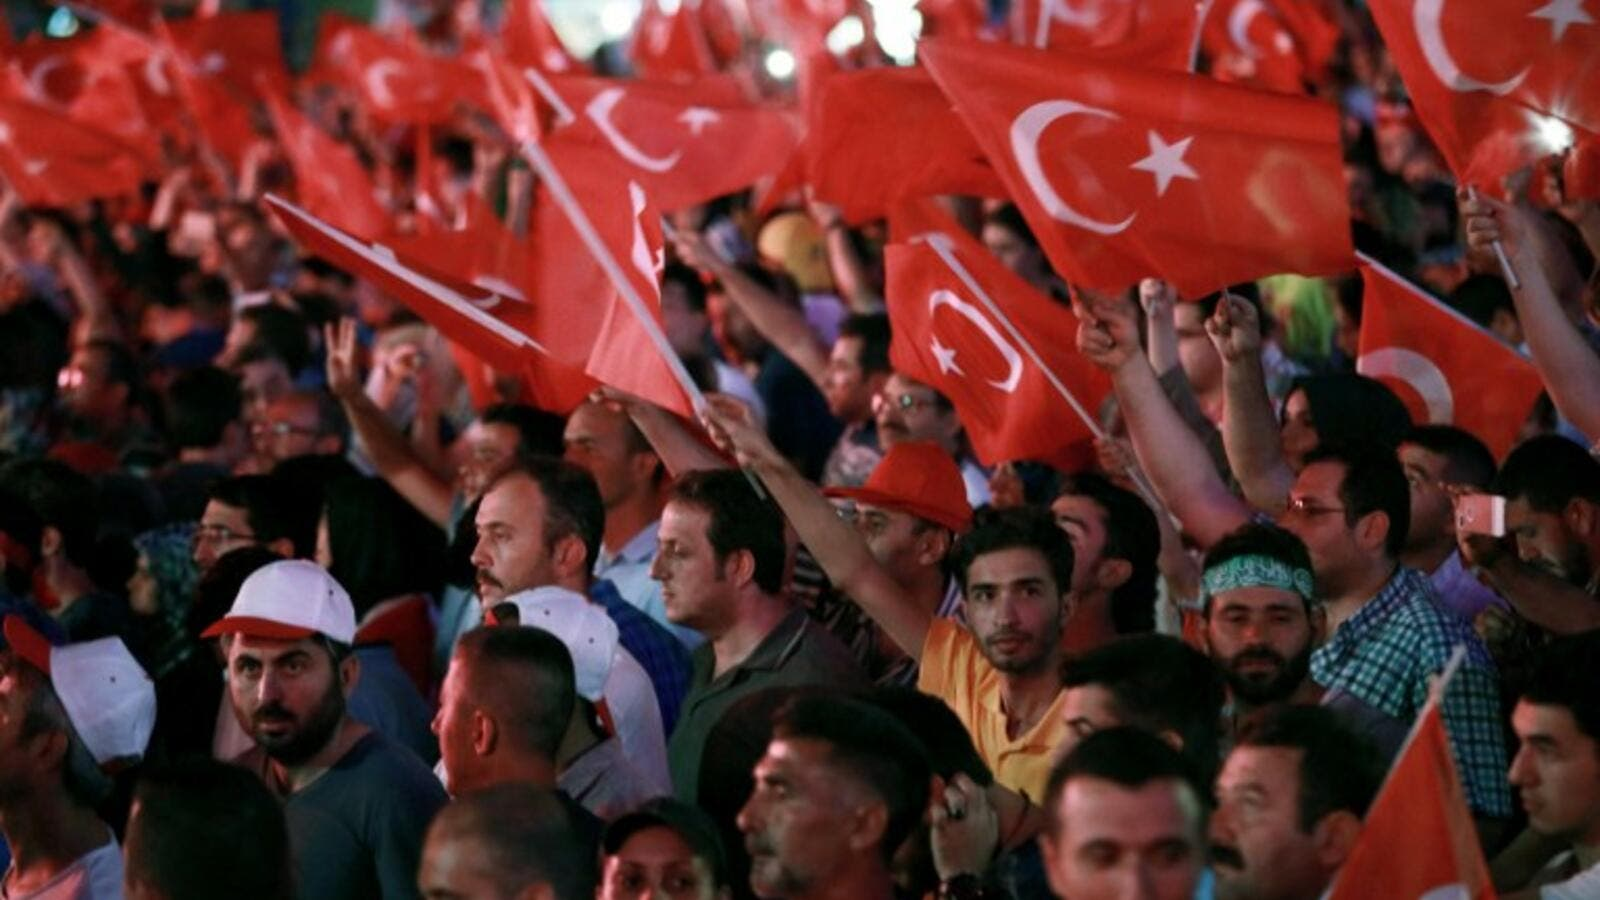 Pro-Erdogan supporters celebrate in Ankara on July 17, 2016 following the failed coup attempt. (AFP/Adem Altan)